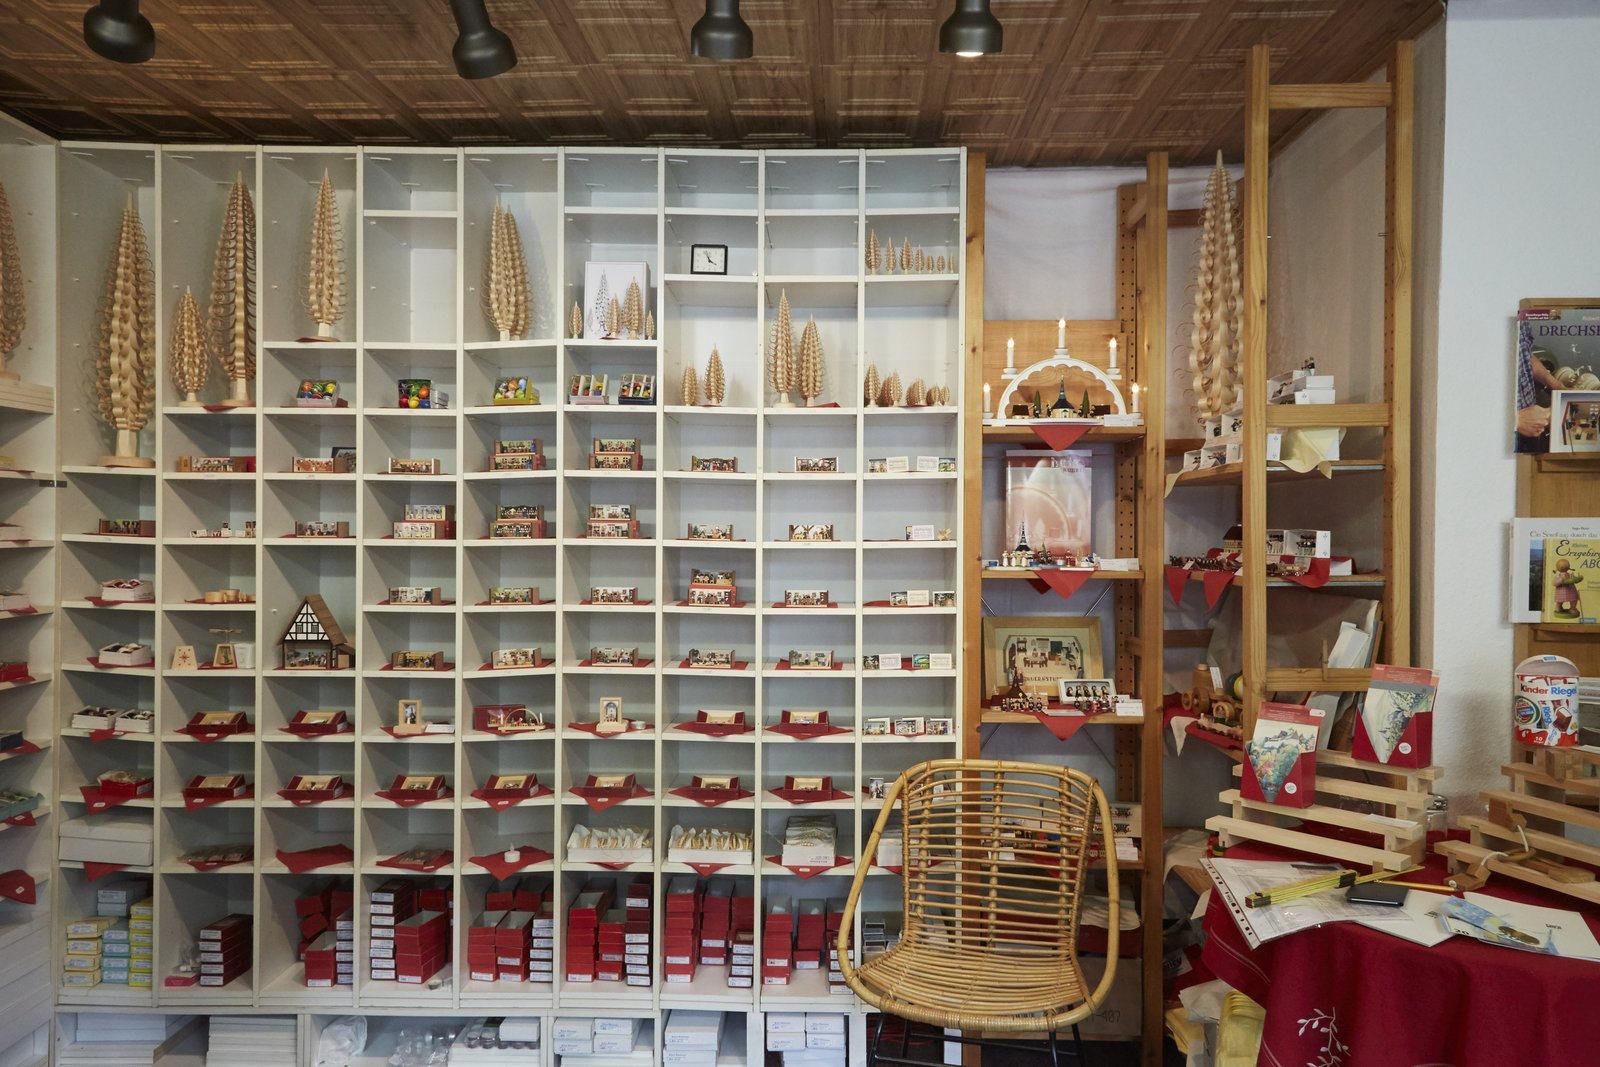 Photo 6 of 14 in Found MUJI Celebrates German Craftsmanship With a New Collection of Useful Objects